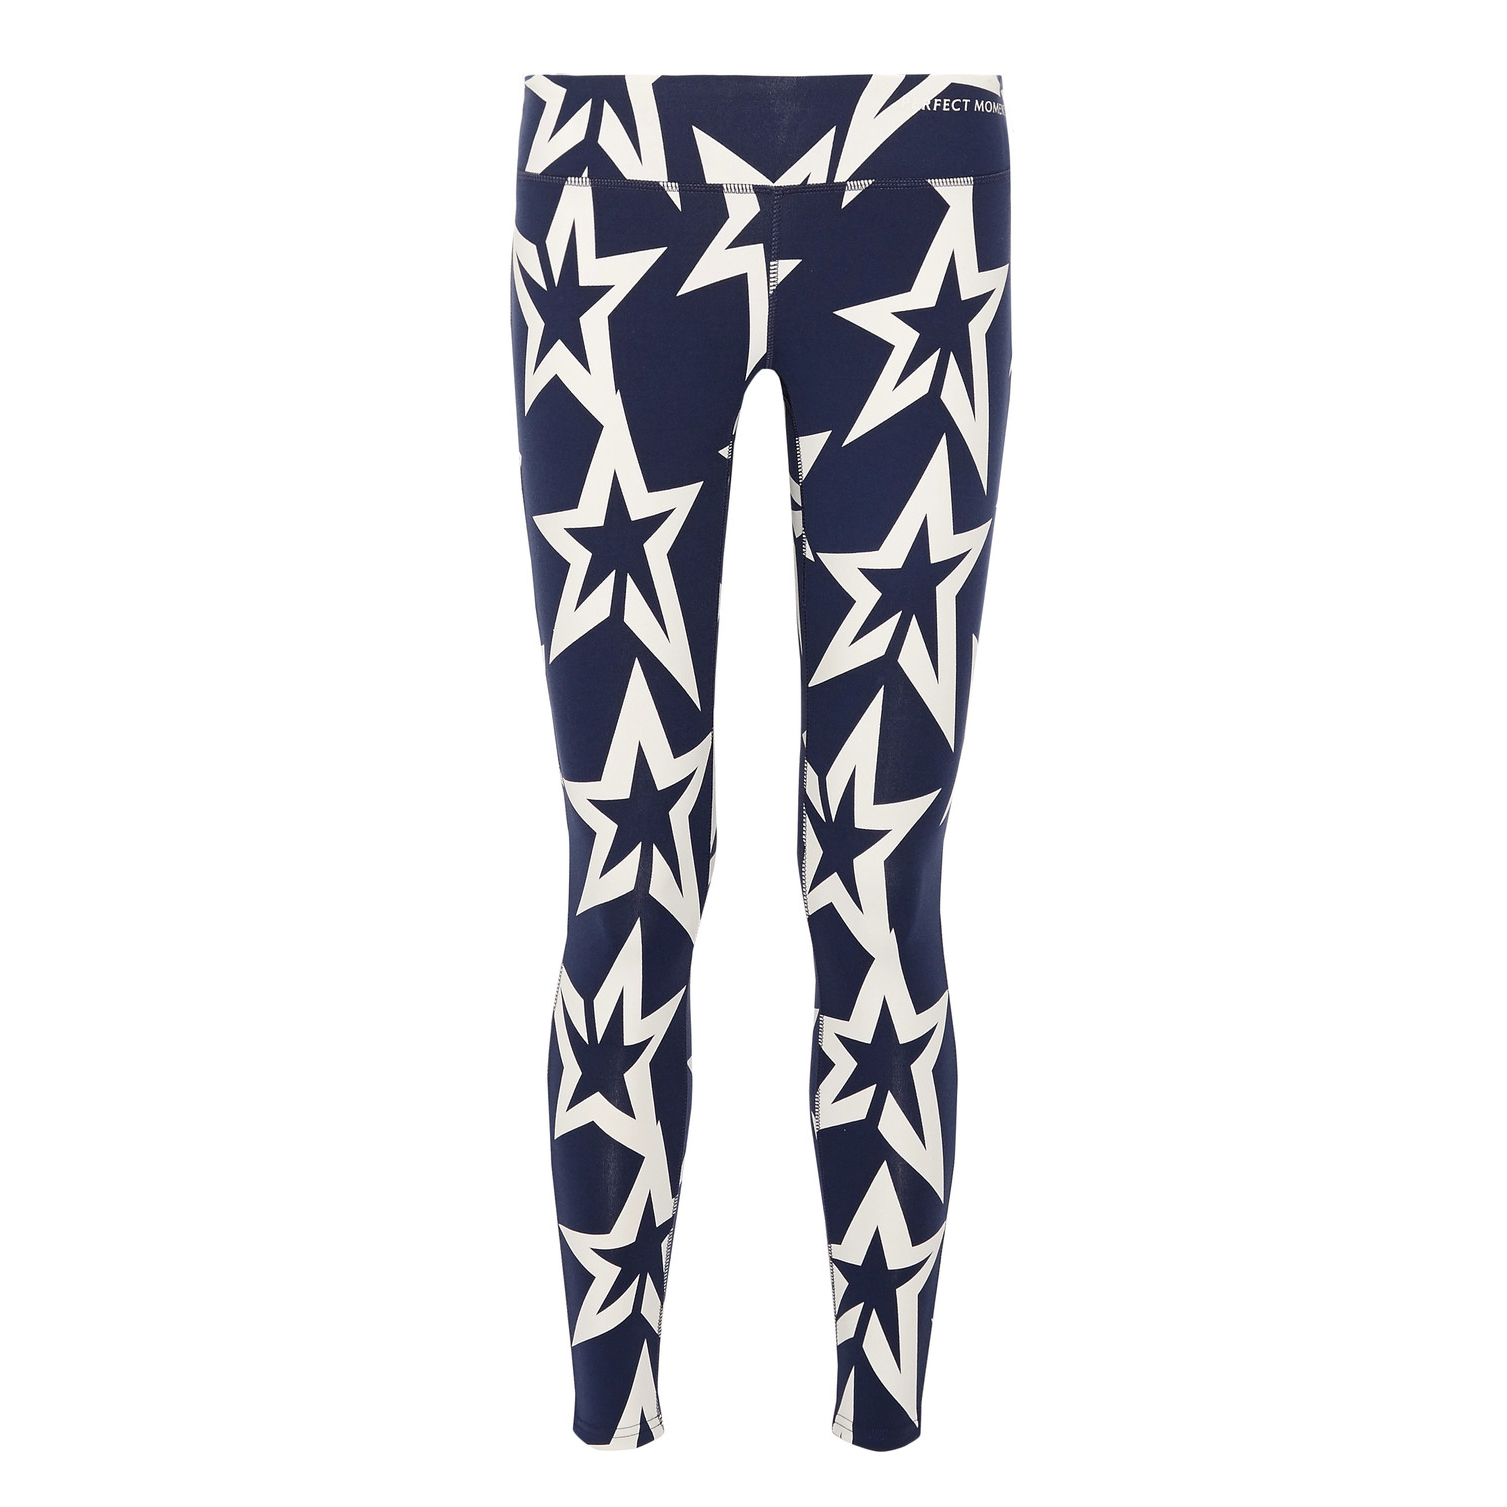 PERFECT MOMENT Star Light printed stretch leggings